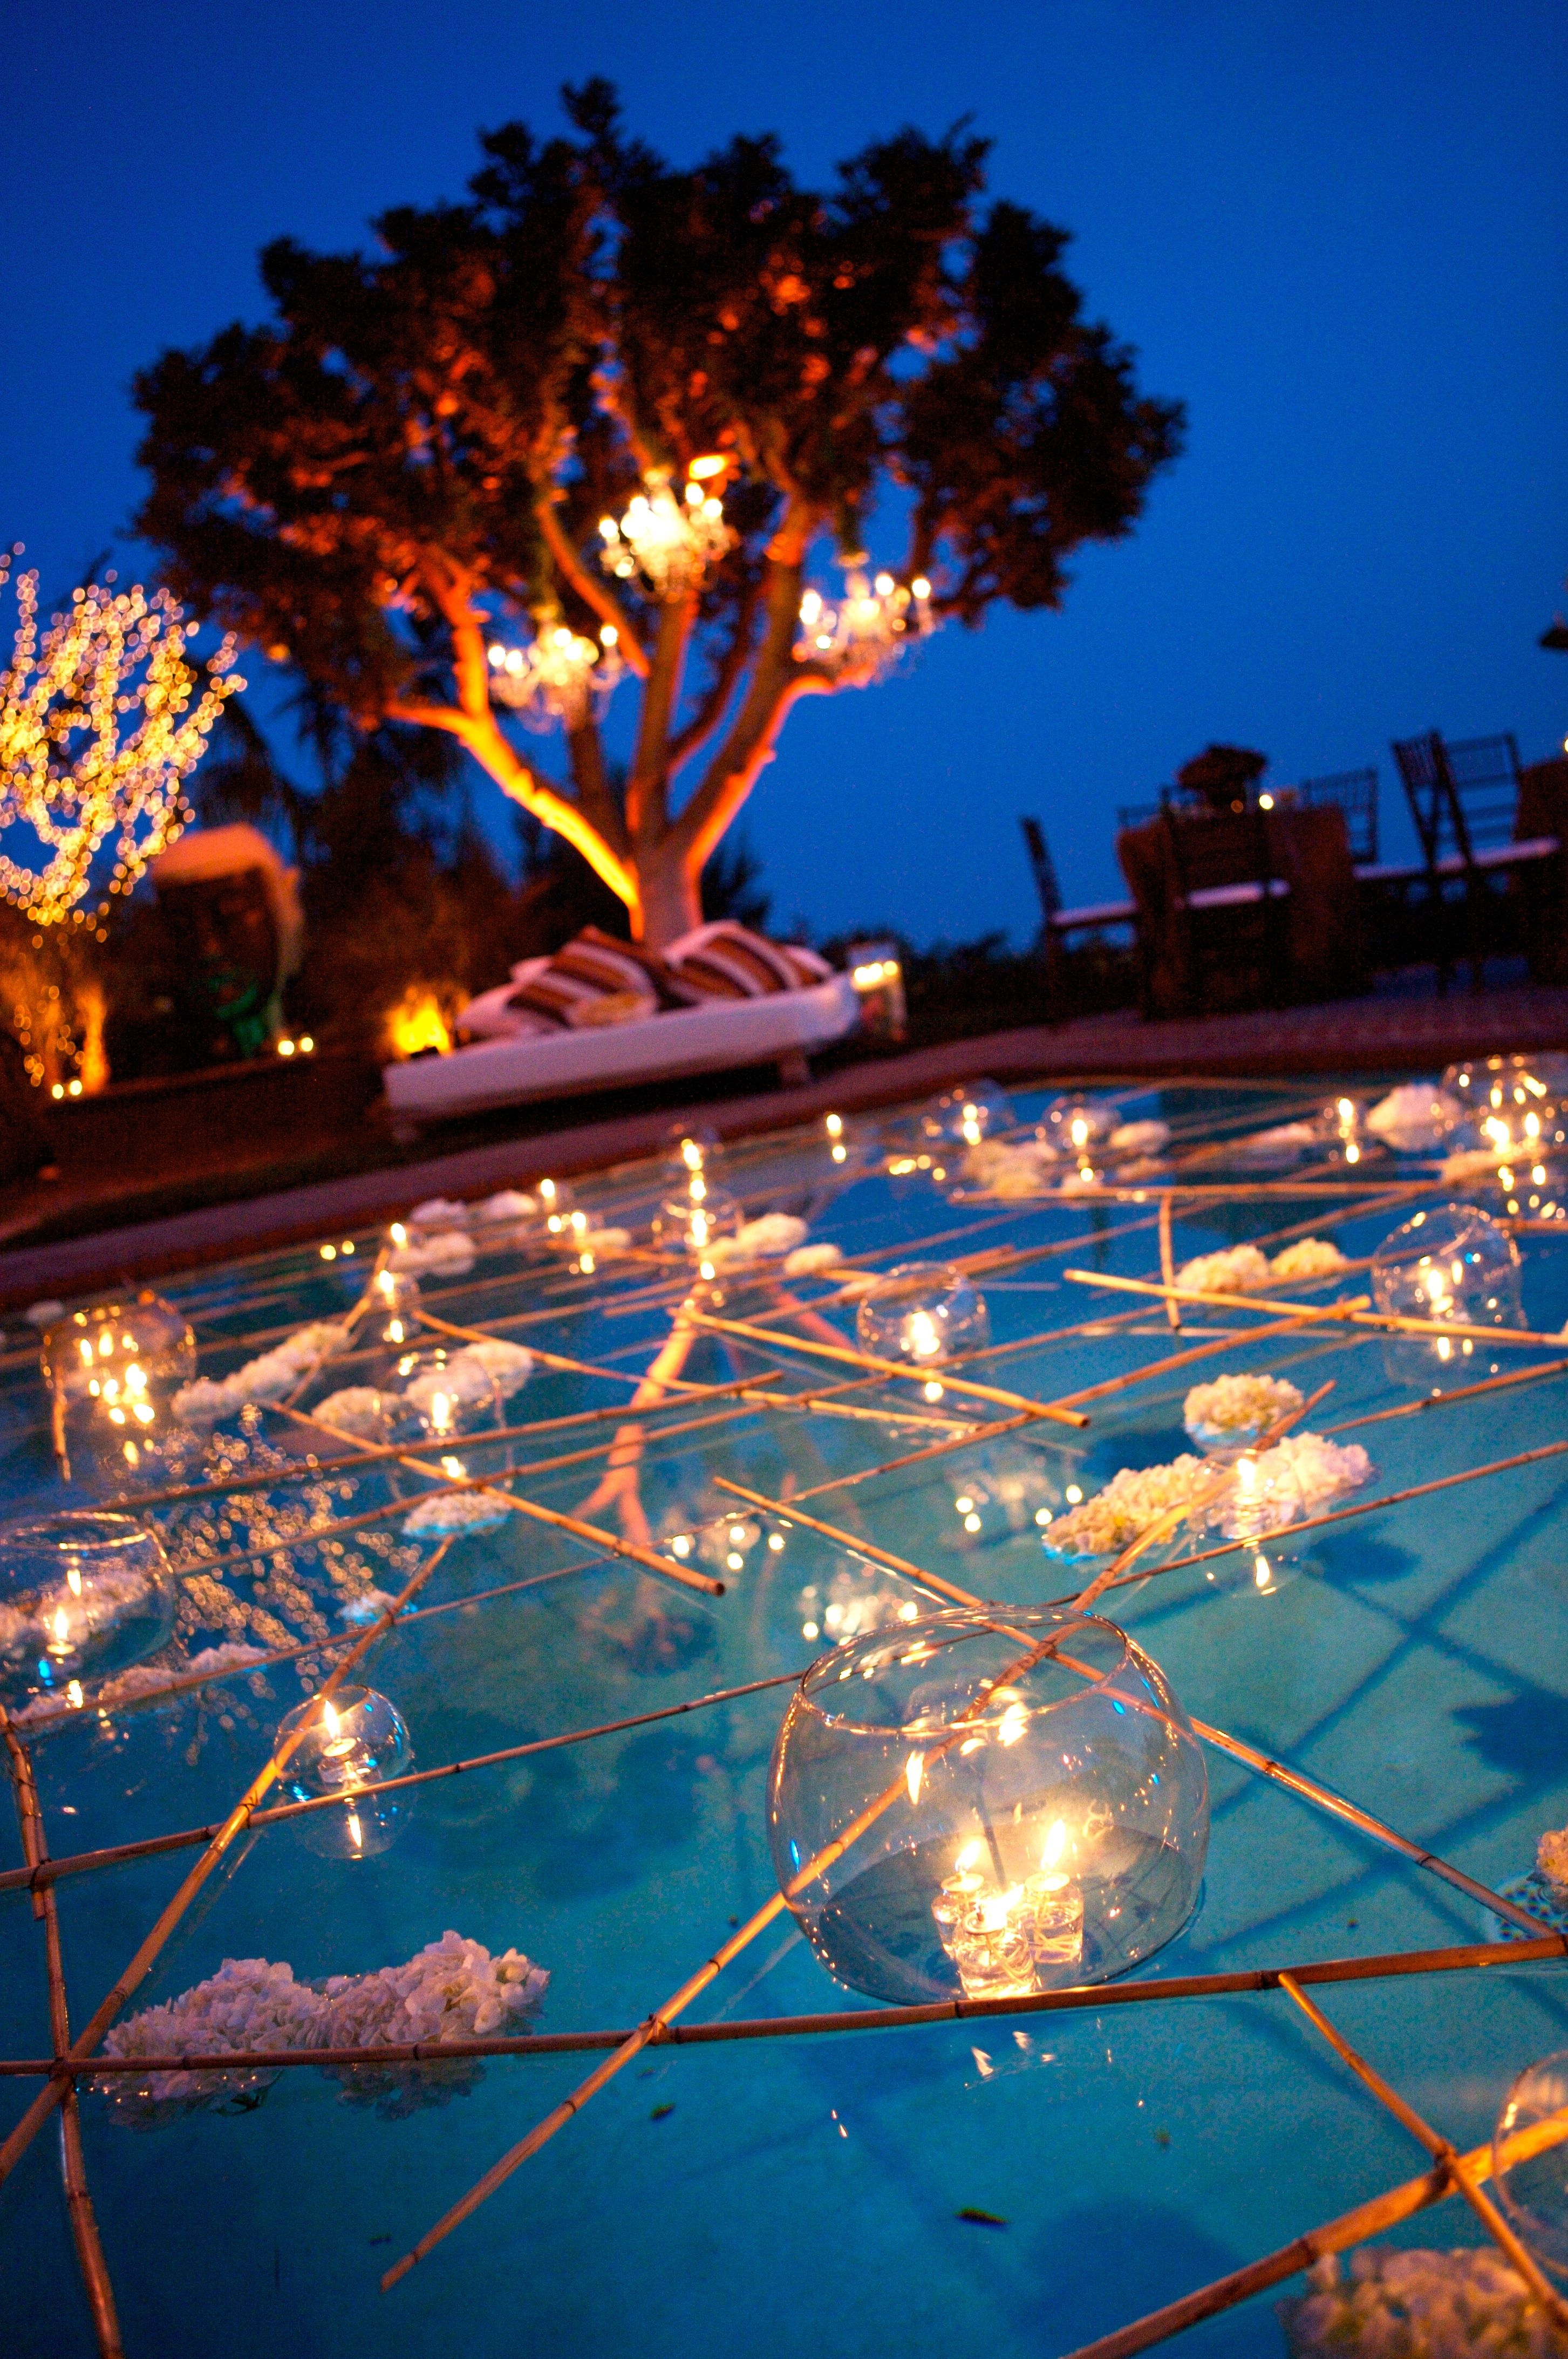 Backyard Weddingive Always Wanted To Get Married In A Backyard With A Pool To Do Something